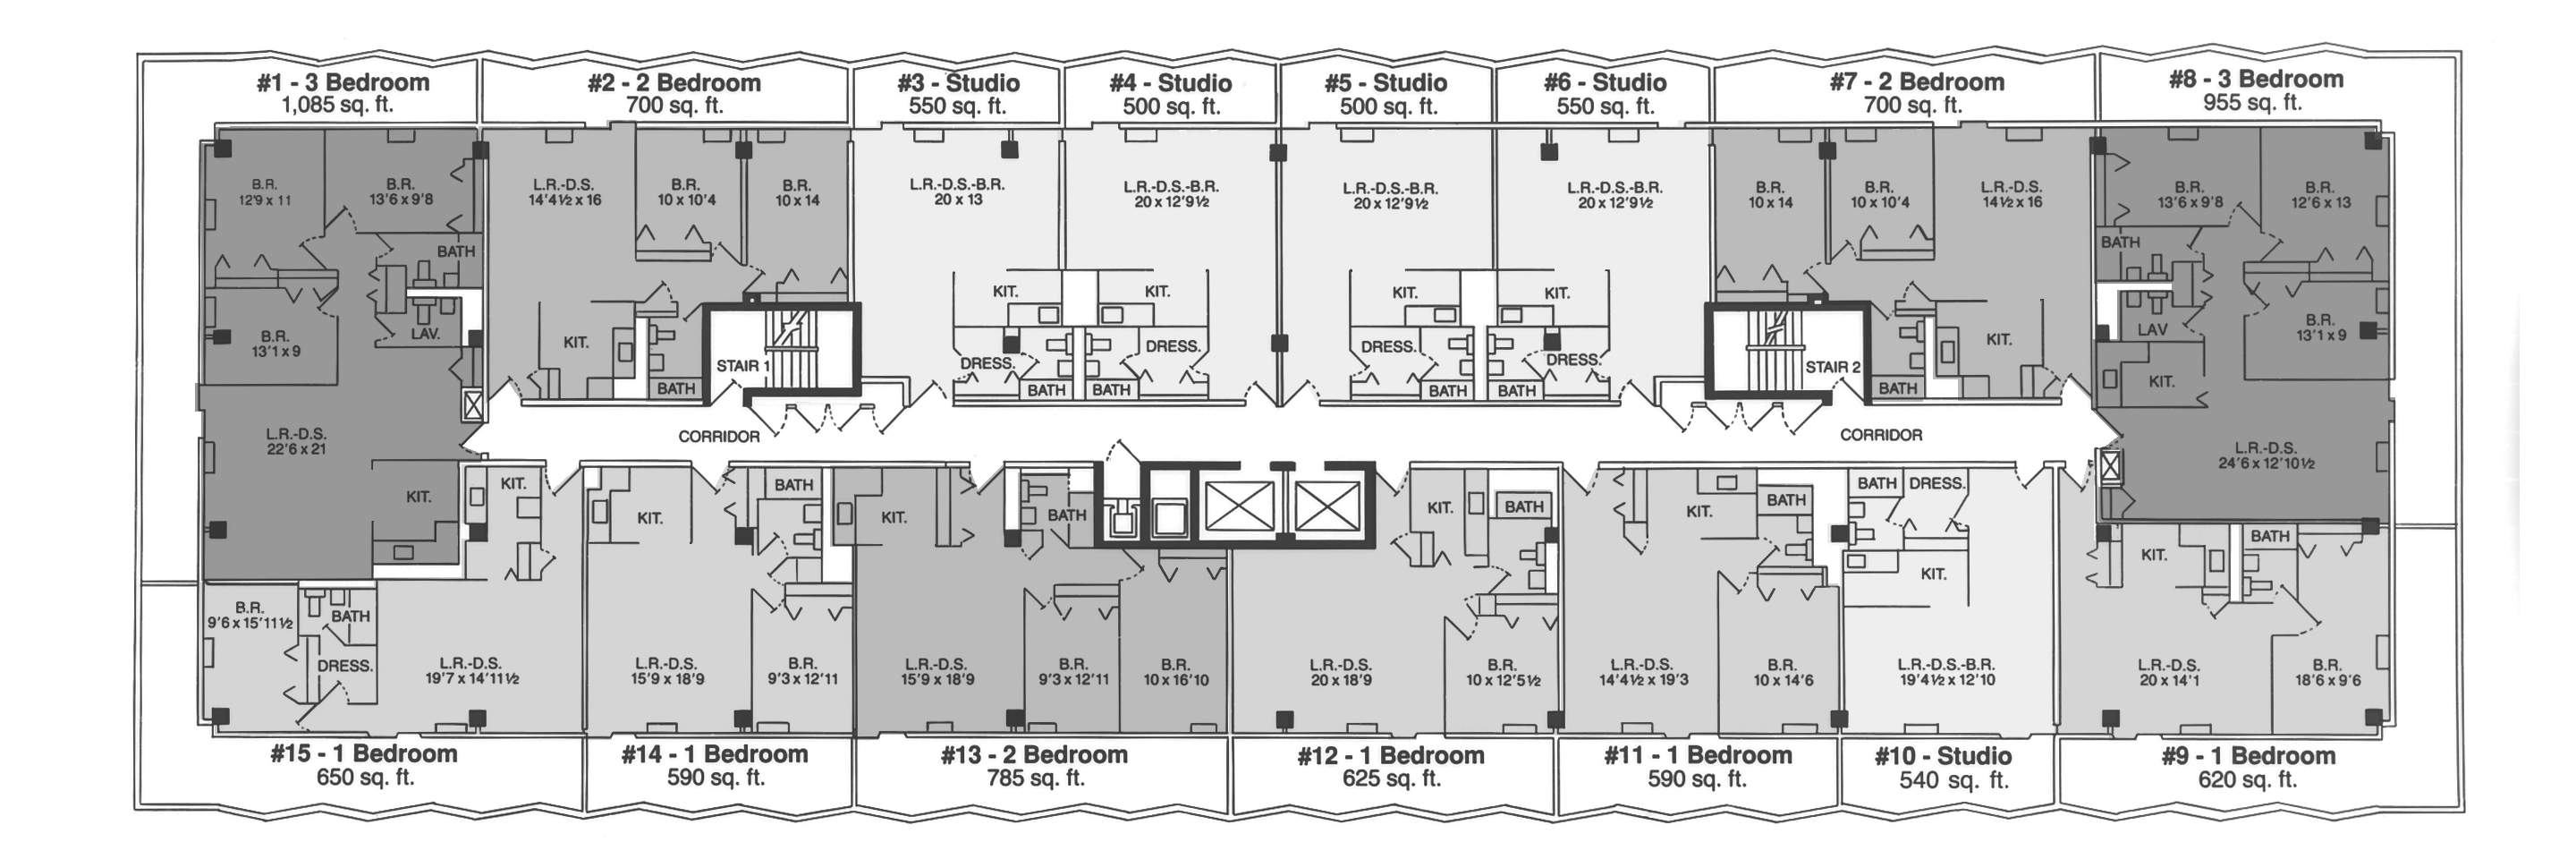 Apartment Block Floor Plans Apartments At Huron Towers